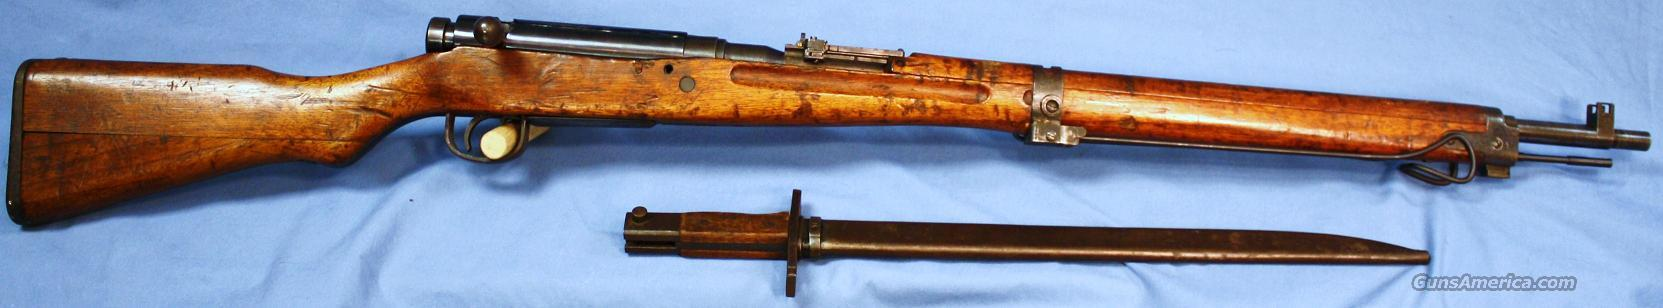 Arisaka Type 99 Japanese Bolt Action Rifle 7.7mm Japanese with Bayonet  Guns > Rifles > Military Misc. Rifles Non-US > Other